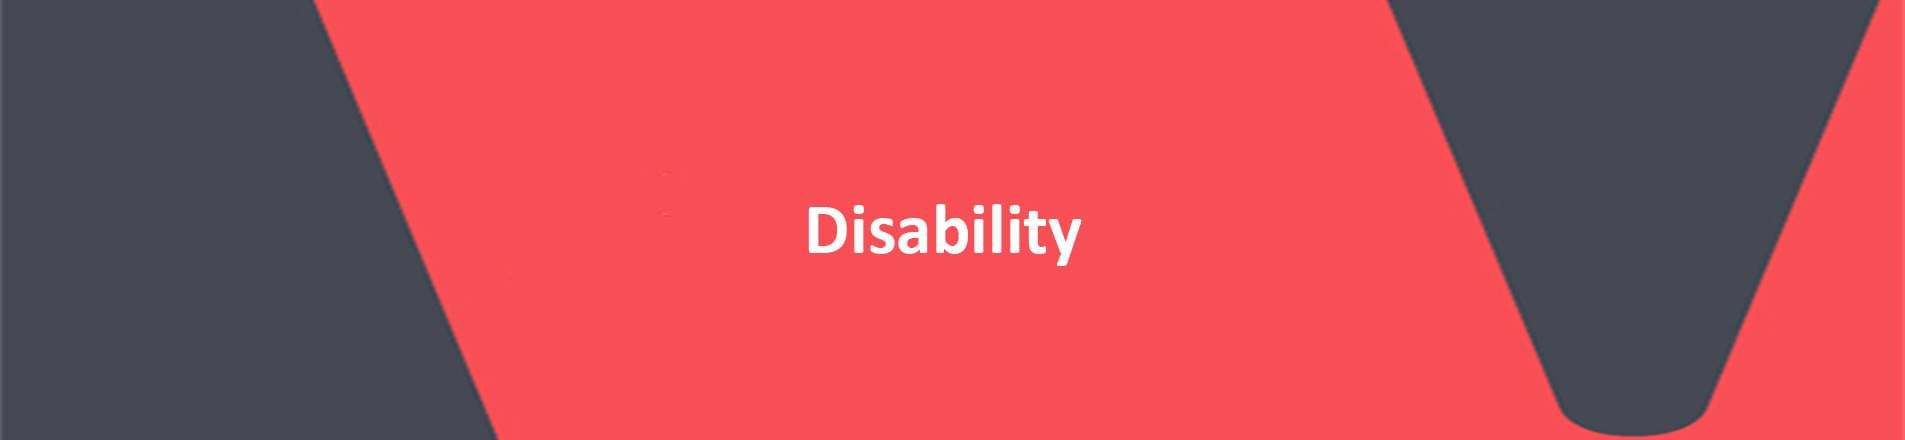 Red banner with white text spelling Disability.